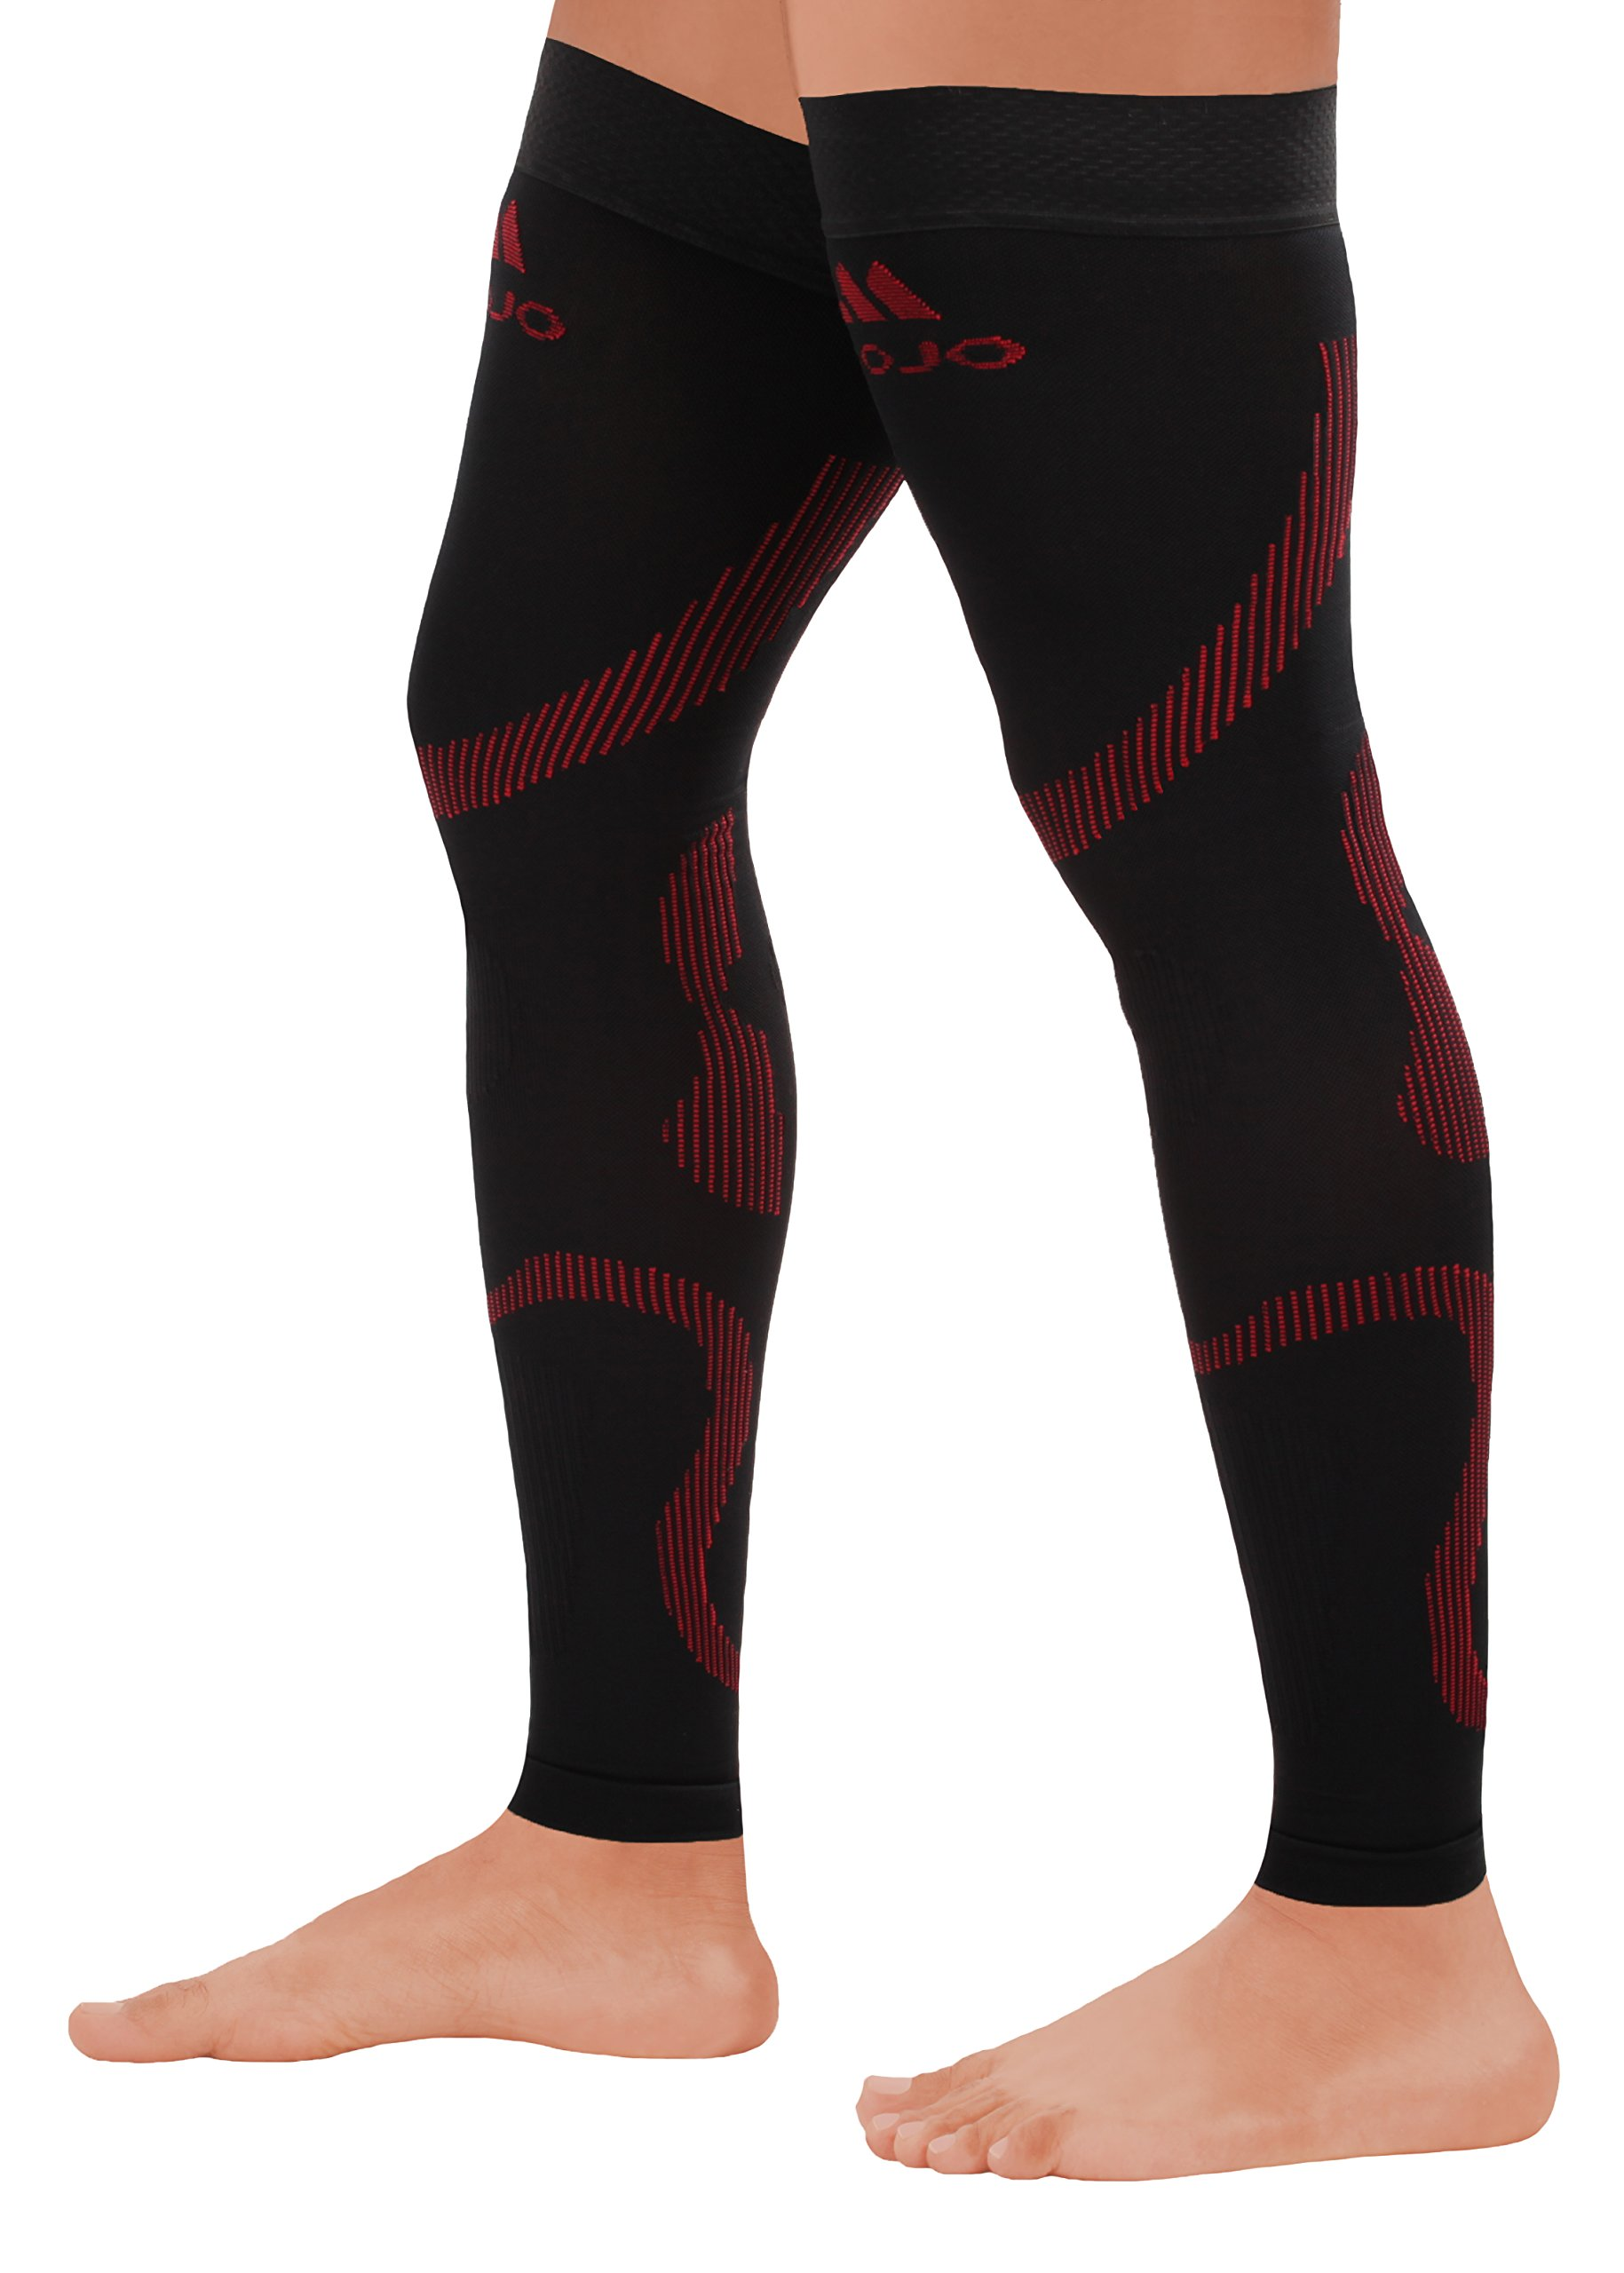 MoJo Sports XXL Full Leg Support & Recovery Compression Thigh Sleeve - Treat Hamstring and Quad Injuries - Hamstring Compression Sleeve - Running Compression Thigh Sleeve (2XL, Black Red)